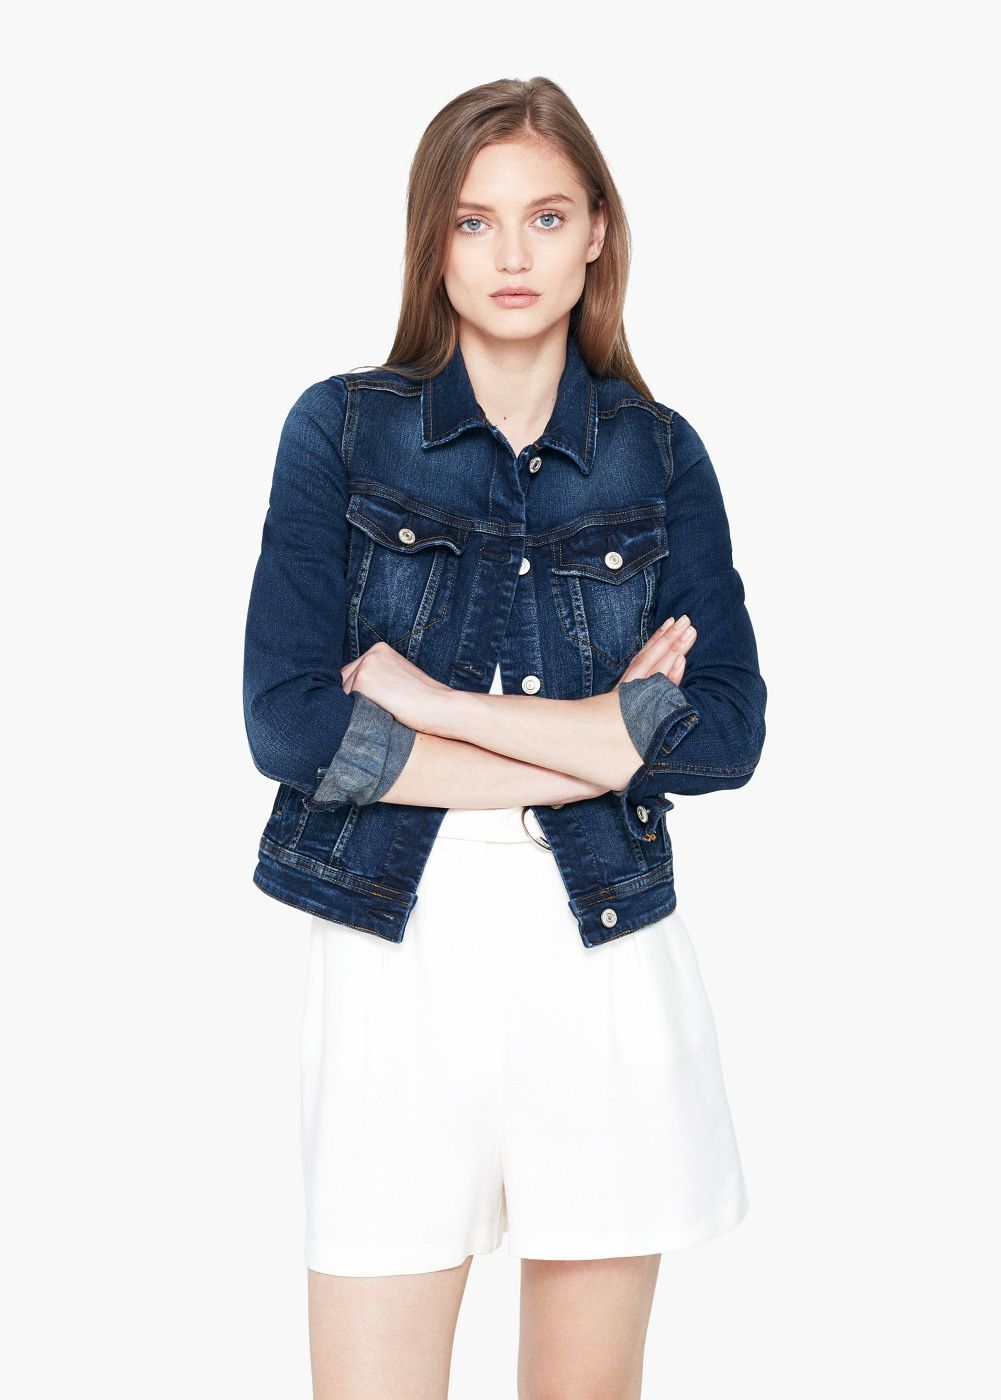 a246df61c5 Dark denim jacket - Women